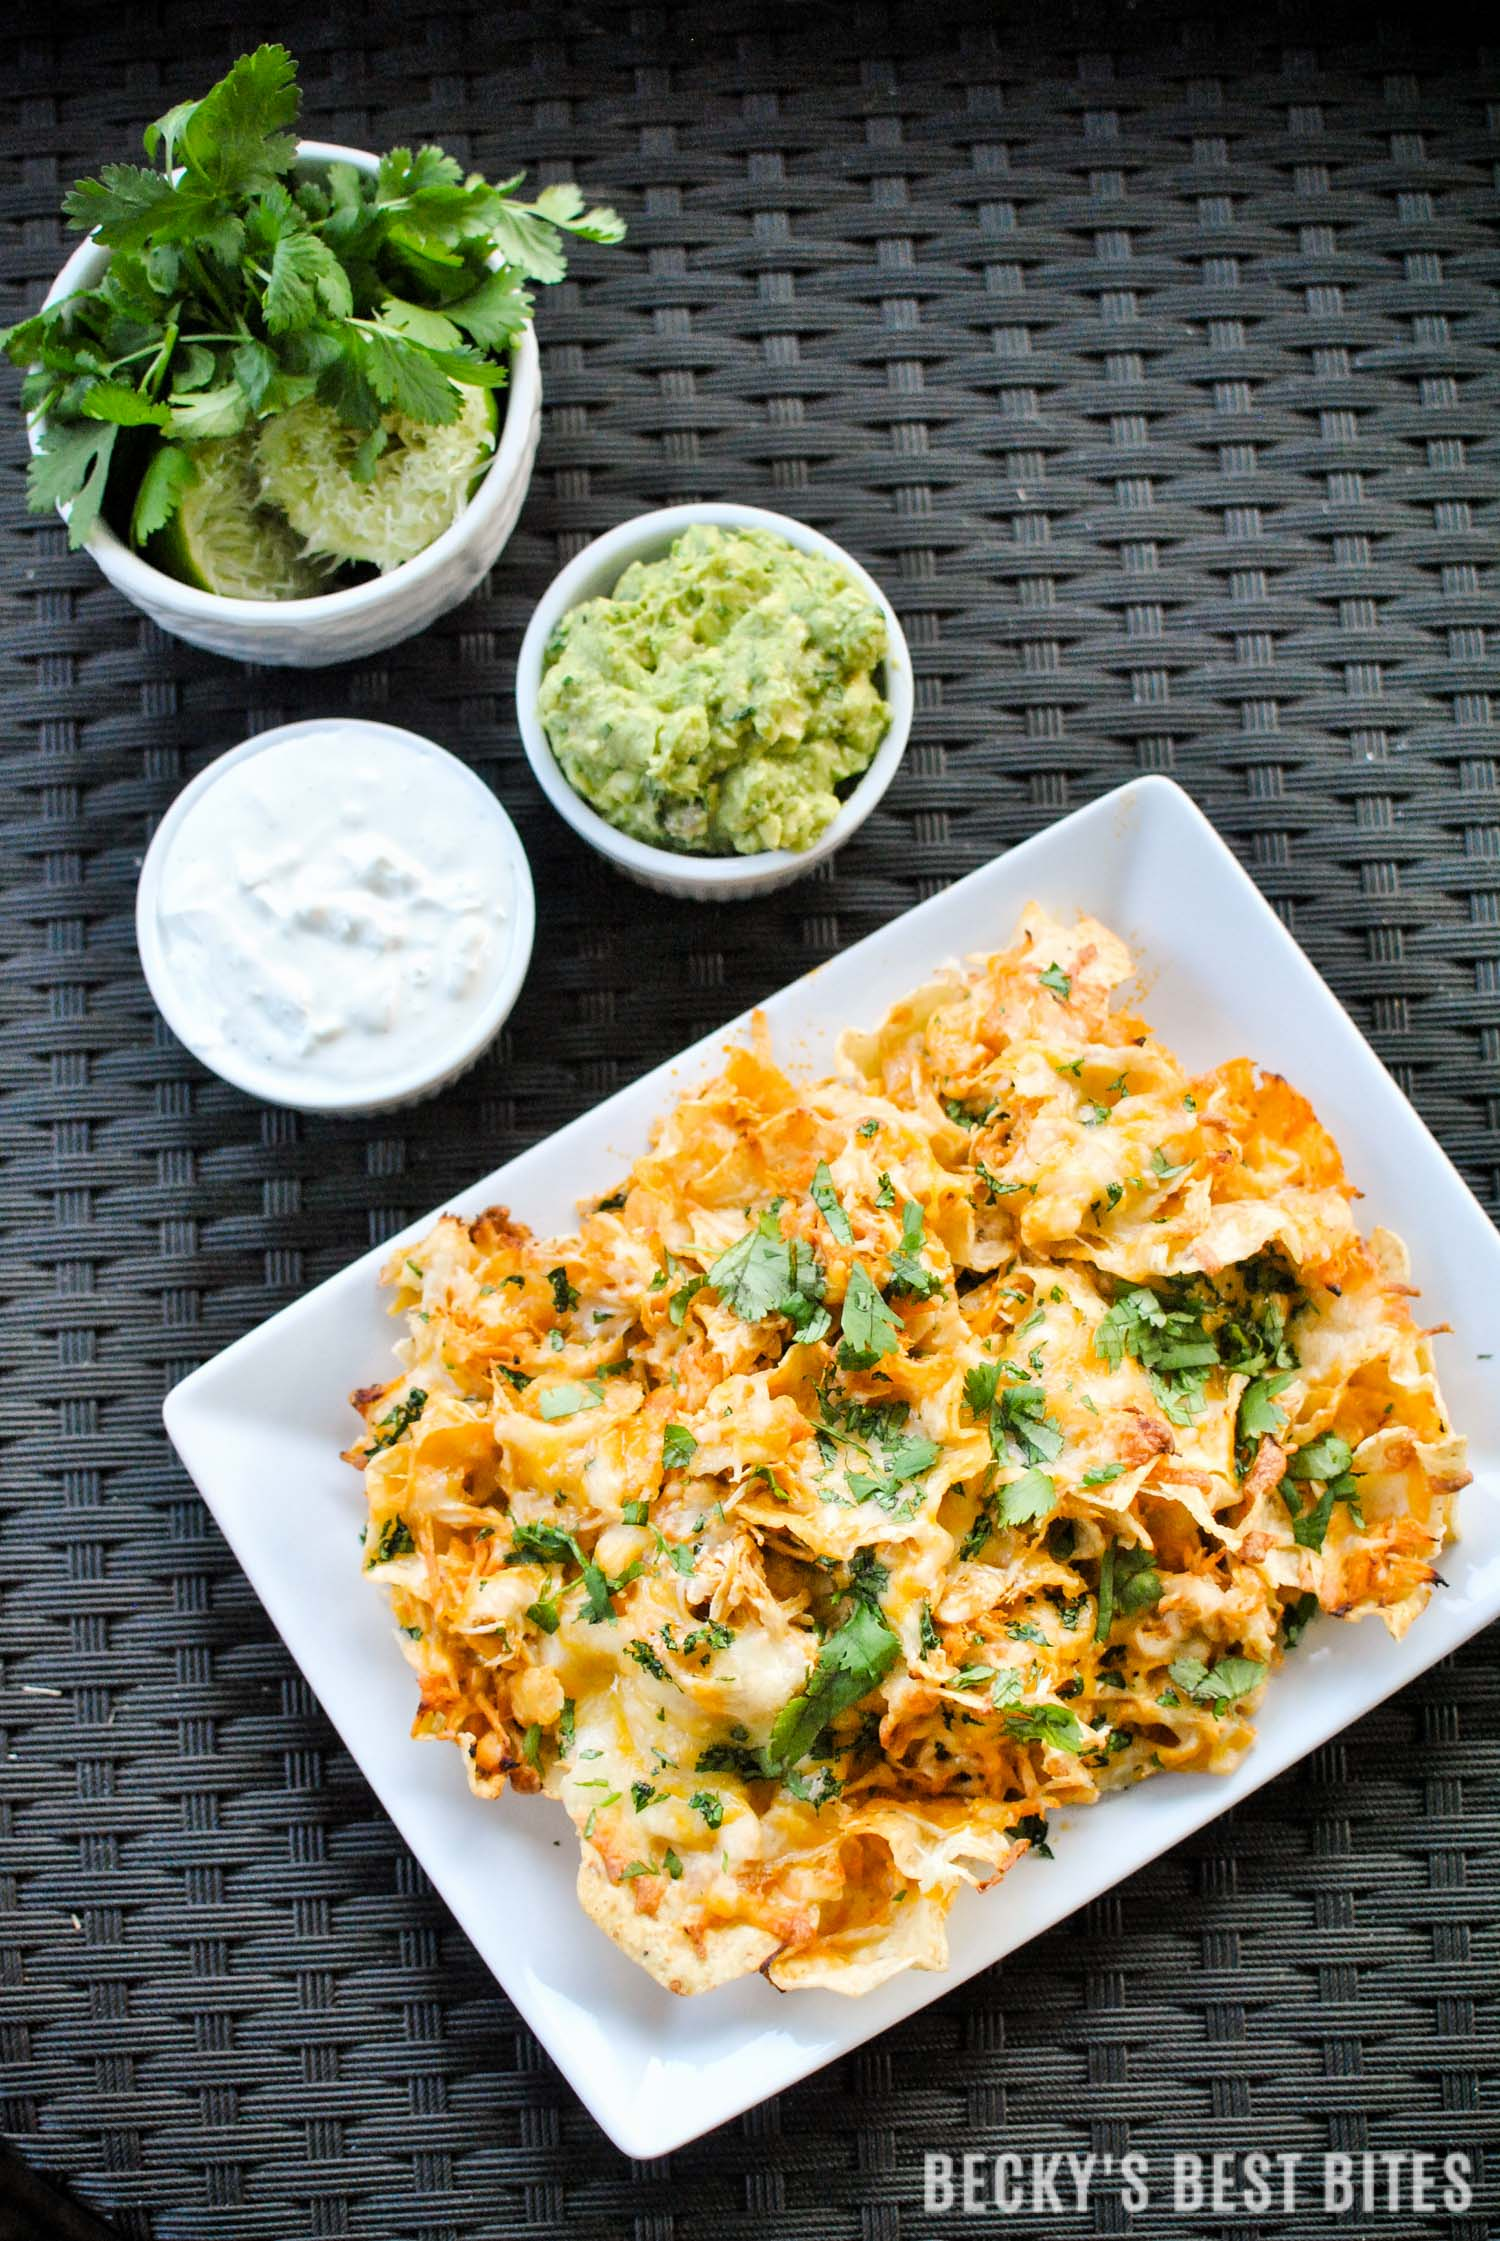 Buffalo chicken nachos the girl who ate everything inducedfo linkedbuffalo chicken nachos the girl who ate everythingbuffalo chicken dip the girl who ate everythingbuffalo chicken dip recipe food network chicken forumfinder Image collections